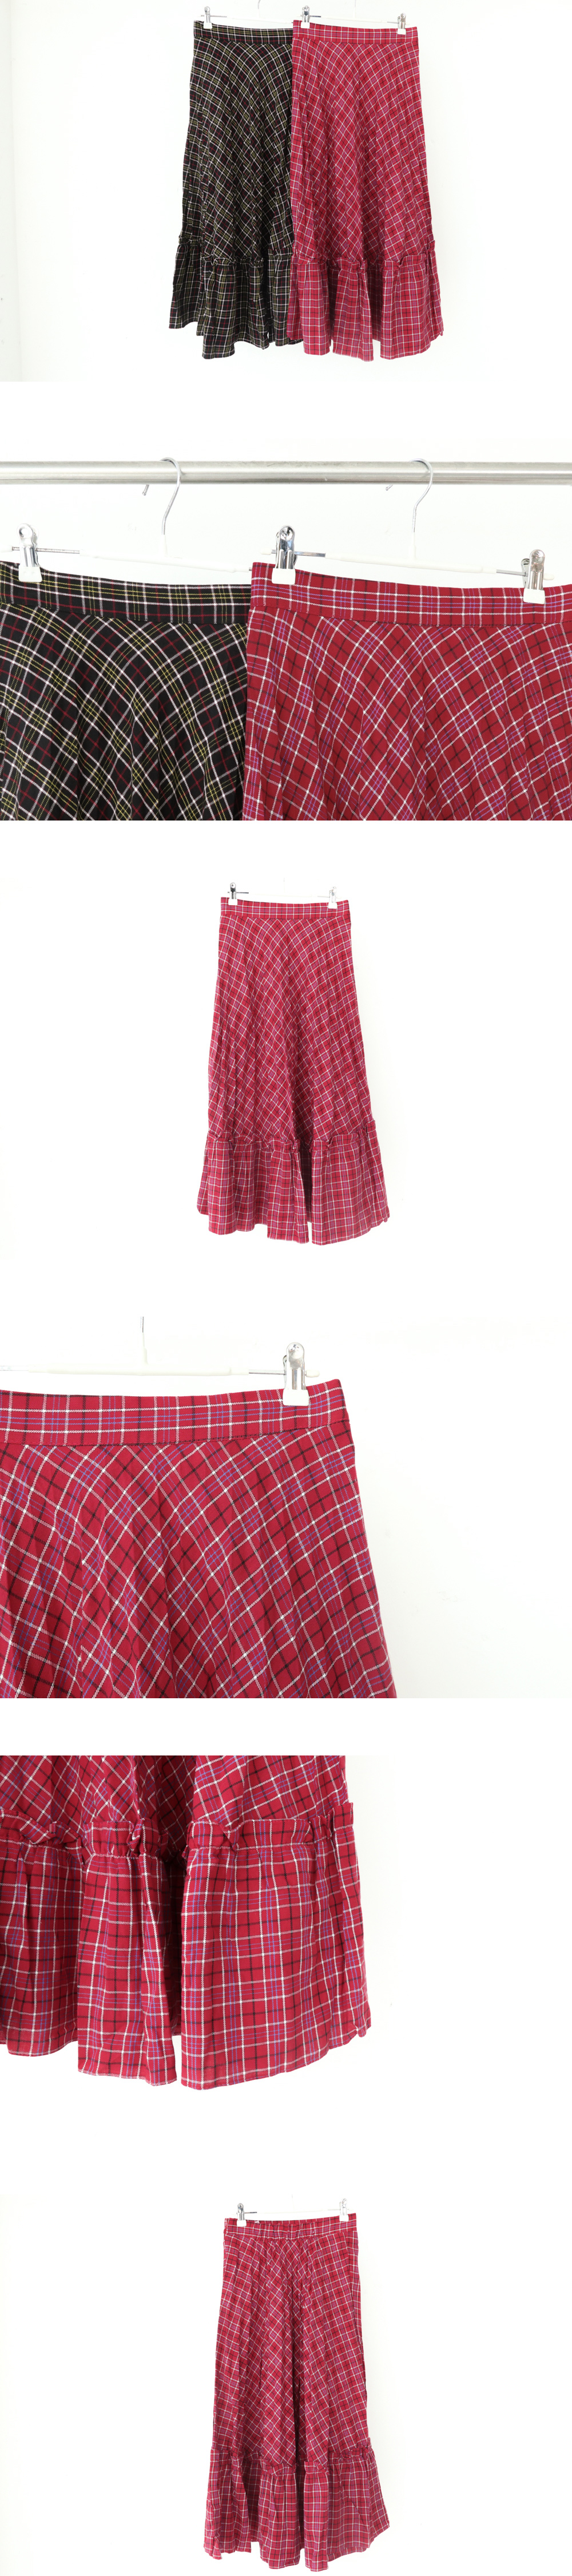 Ruby pleated long skirt